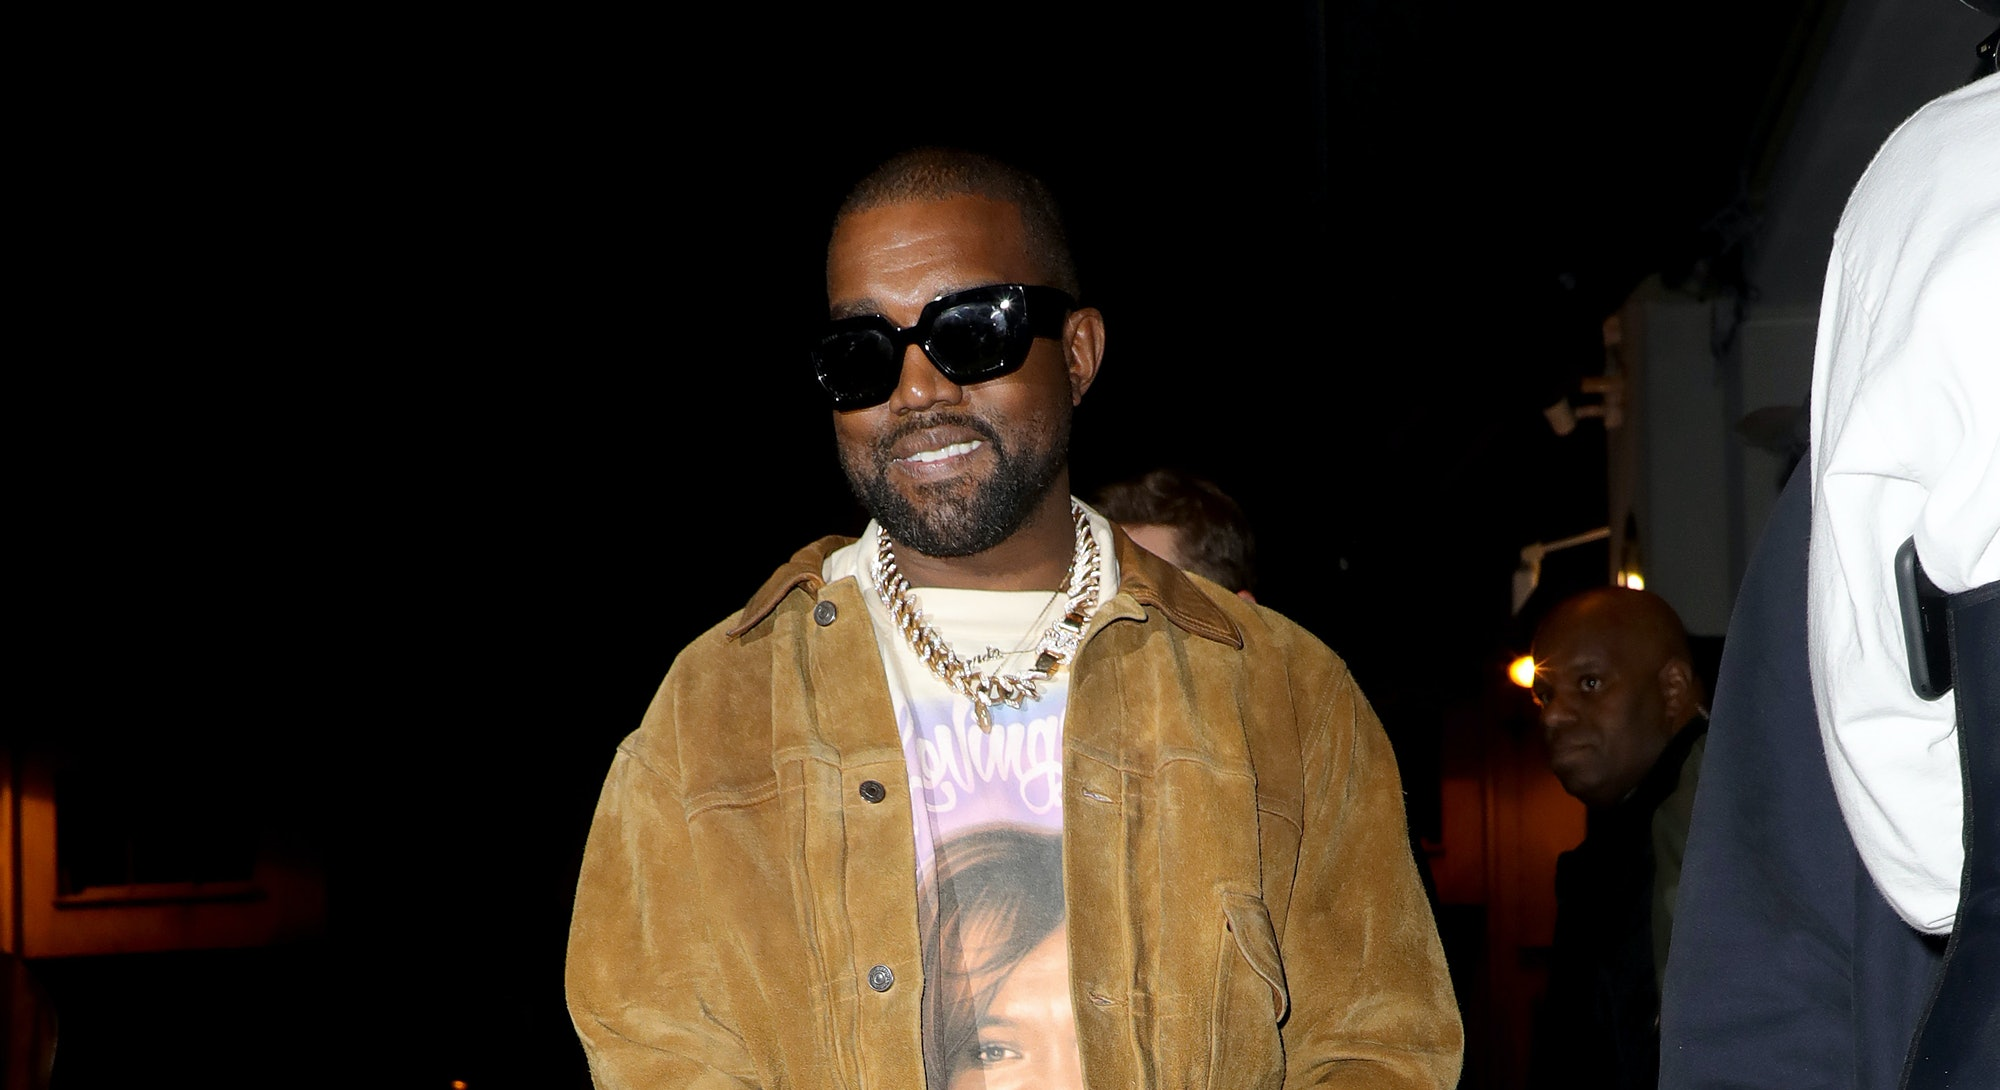 PARIS, FRANCE - MARCH 02: Kanye West is seen leaving a restaurant after his show on March 02, 2020 in Paris, France. (Photo by Pierre Suu/GC Images)